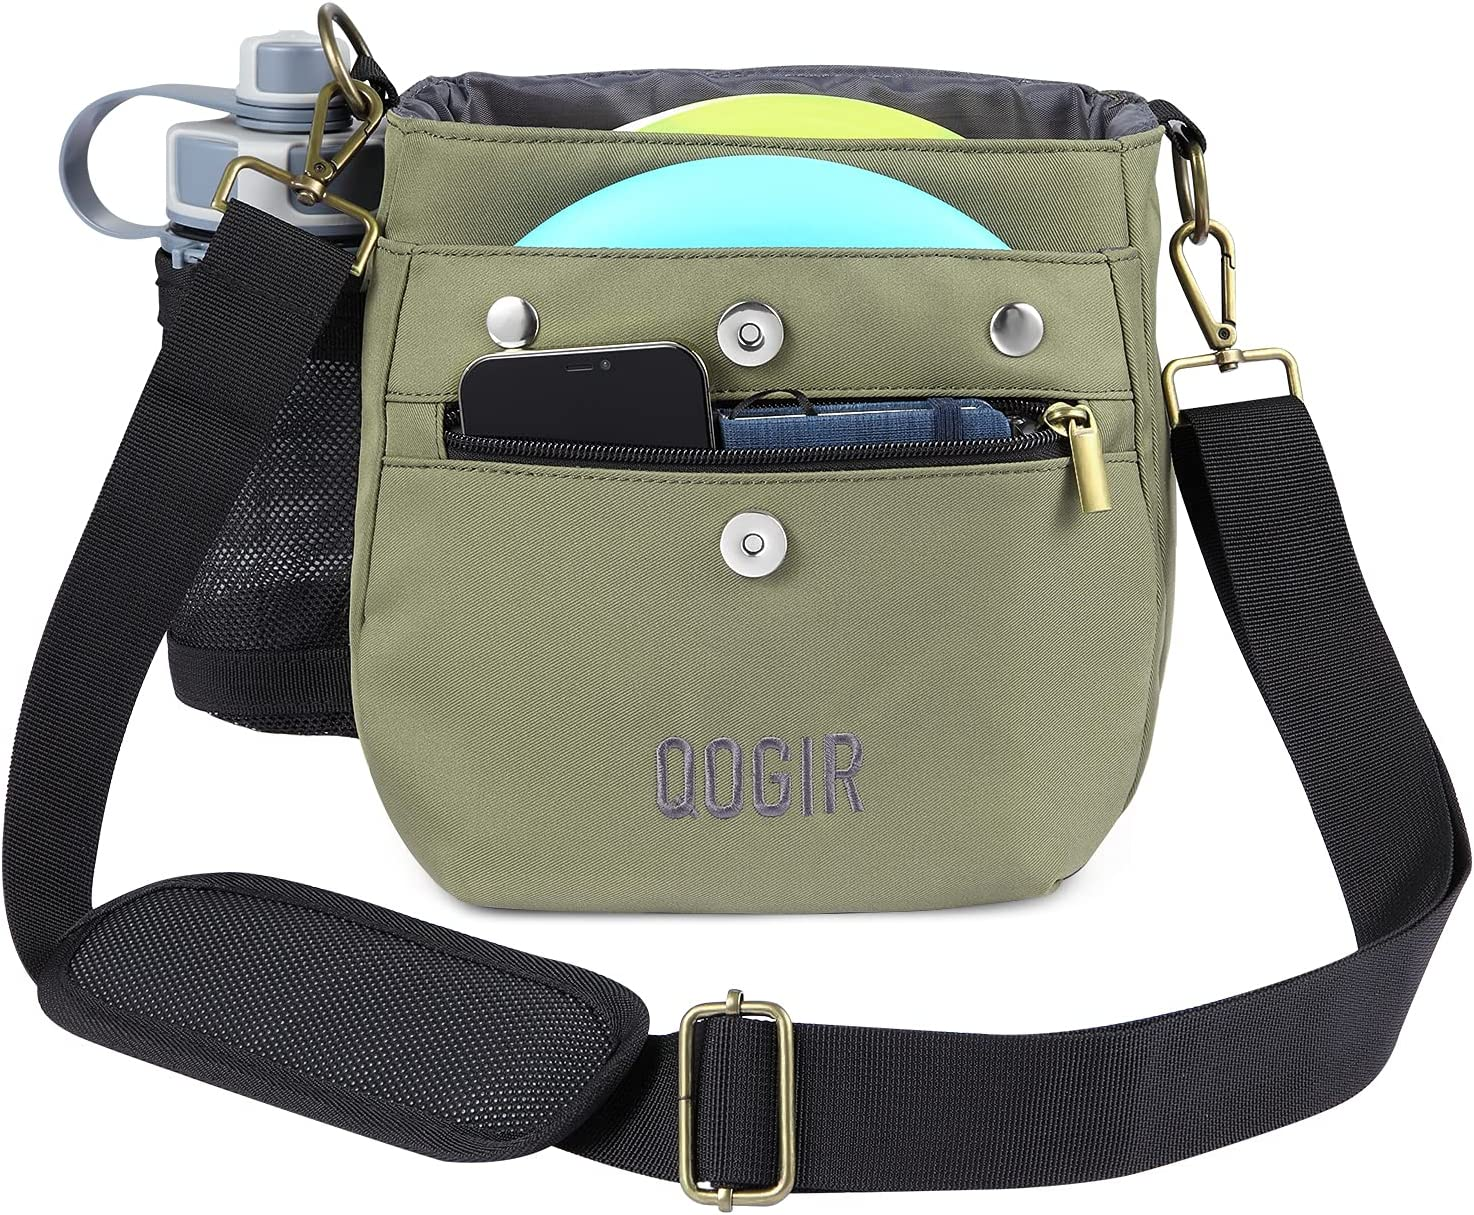 QOGIR Lightweight Disc Safety and trust Super Special SALE held Golf Bag: 8 Durable Bag with Frisbee